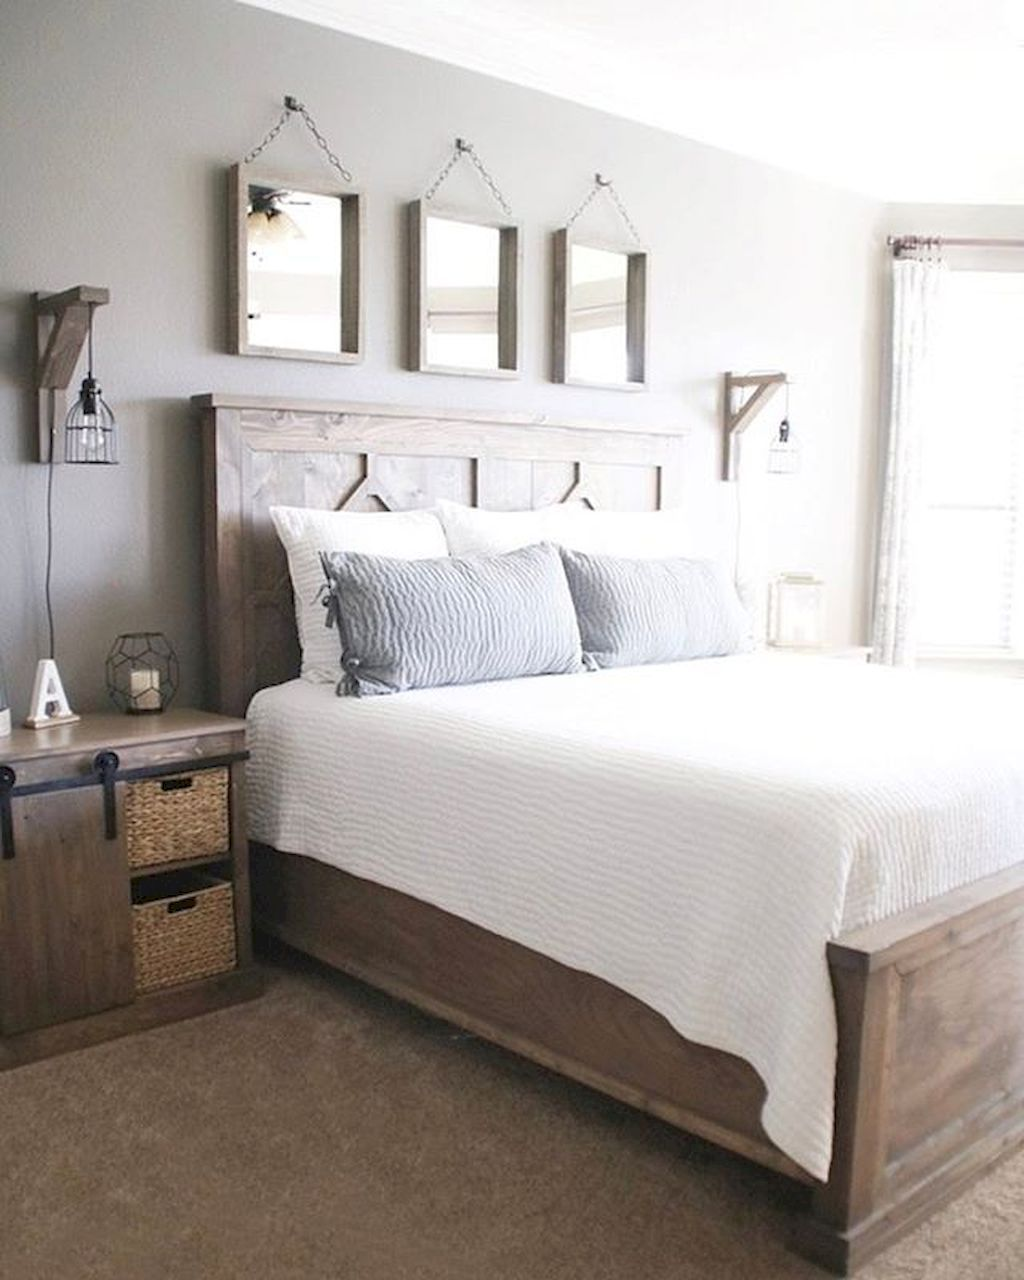 Rustic farmhouse style master bedroom ideas 22 cabin for Farmhouse master bedroom